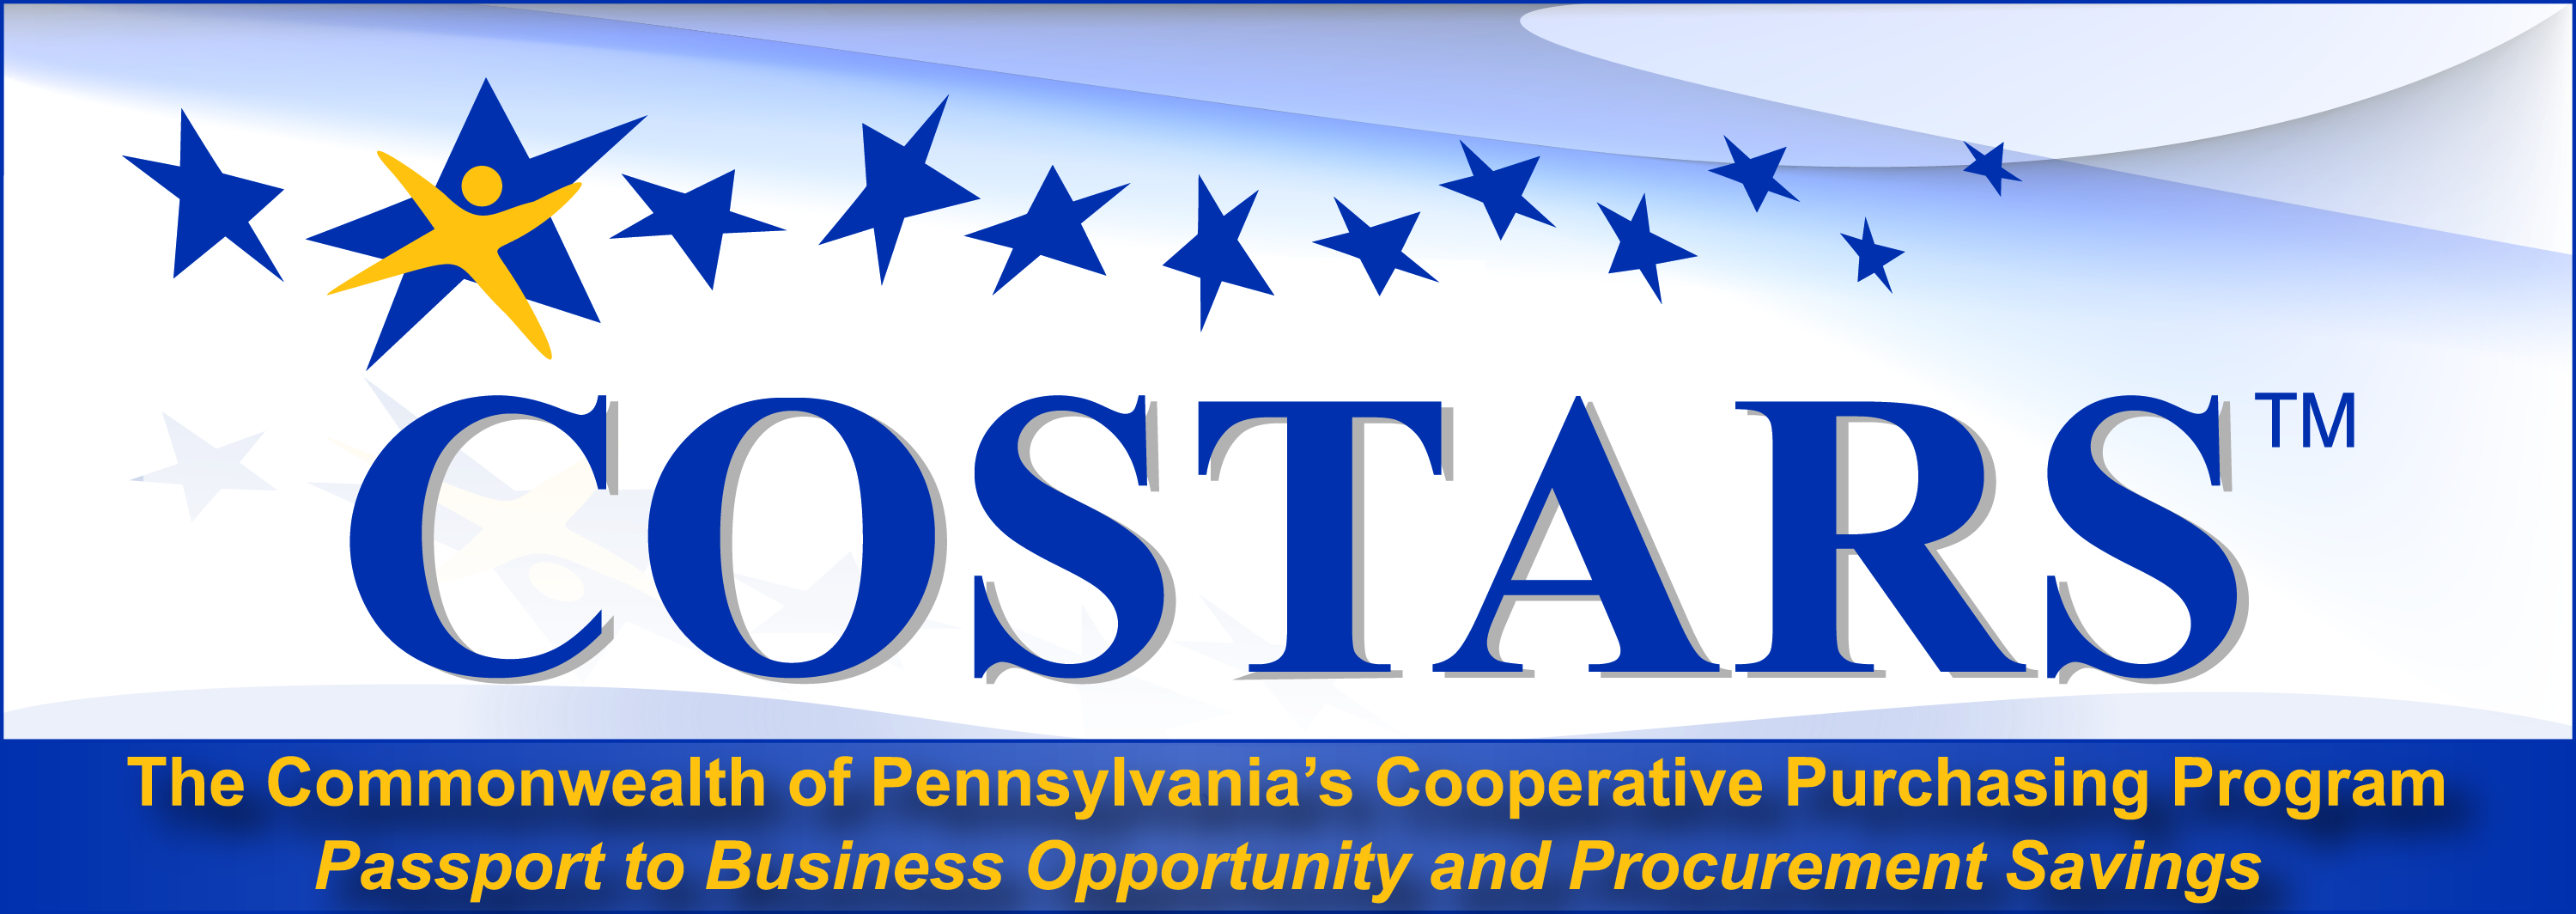 Commonwealth of Pennsylvania's cooperative purchasing program